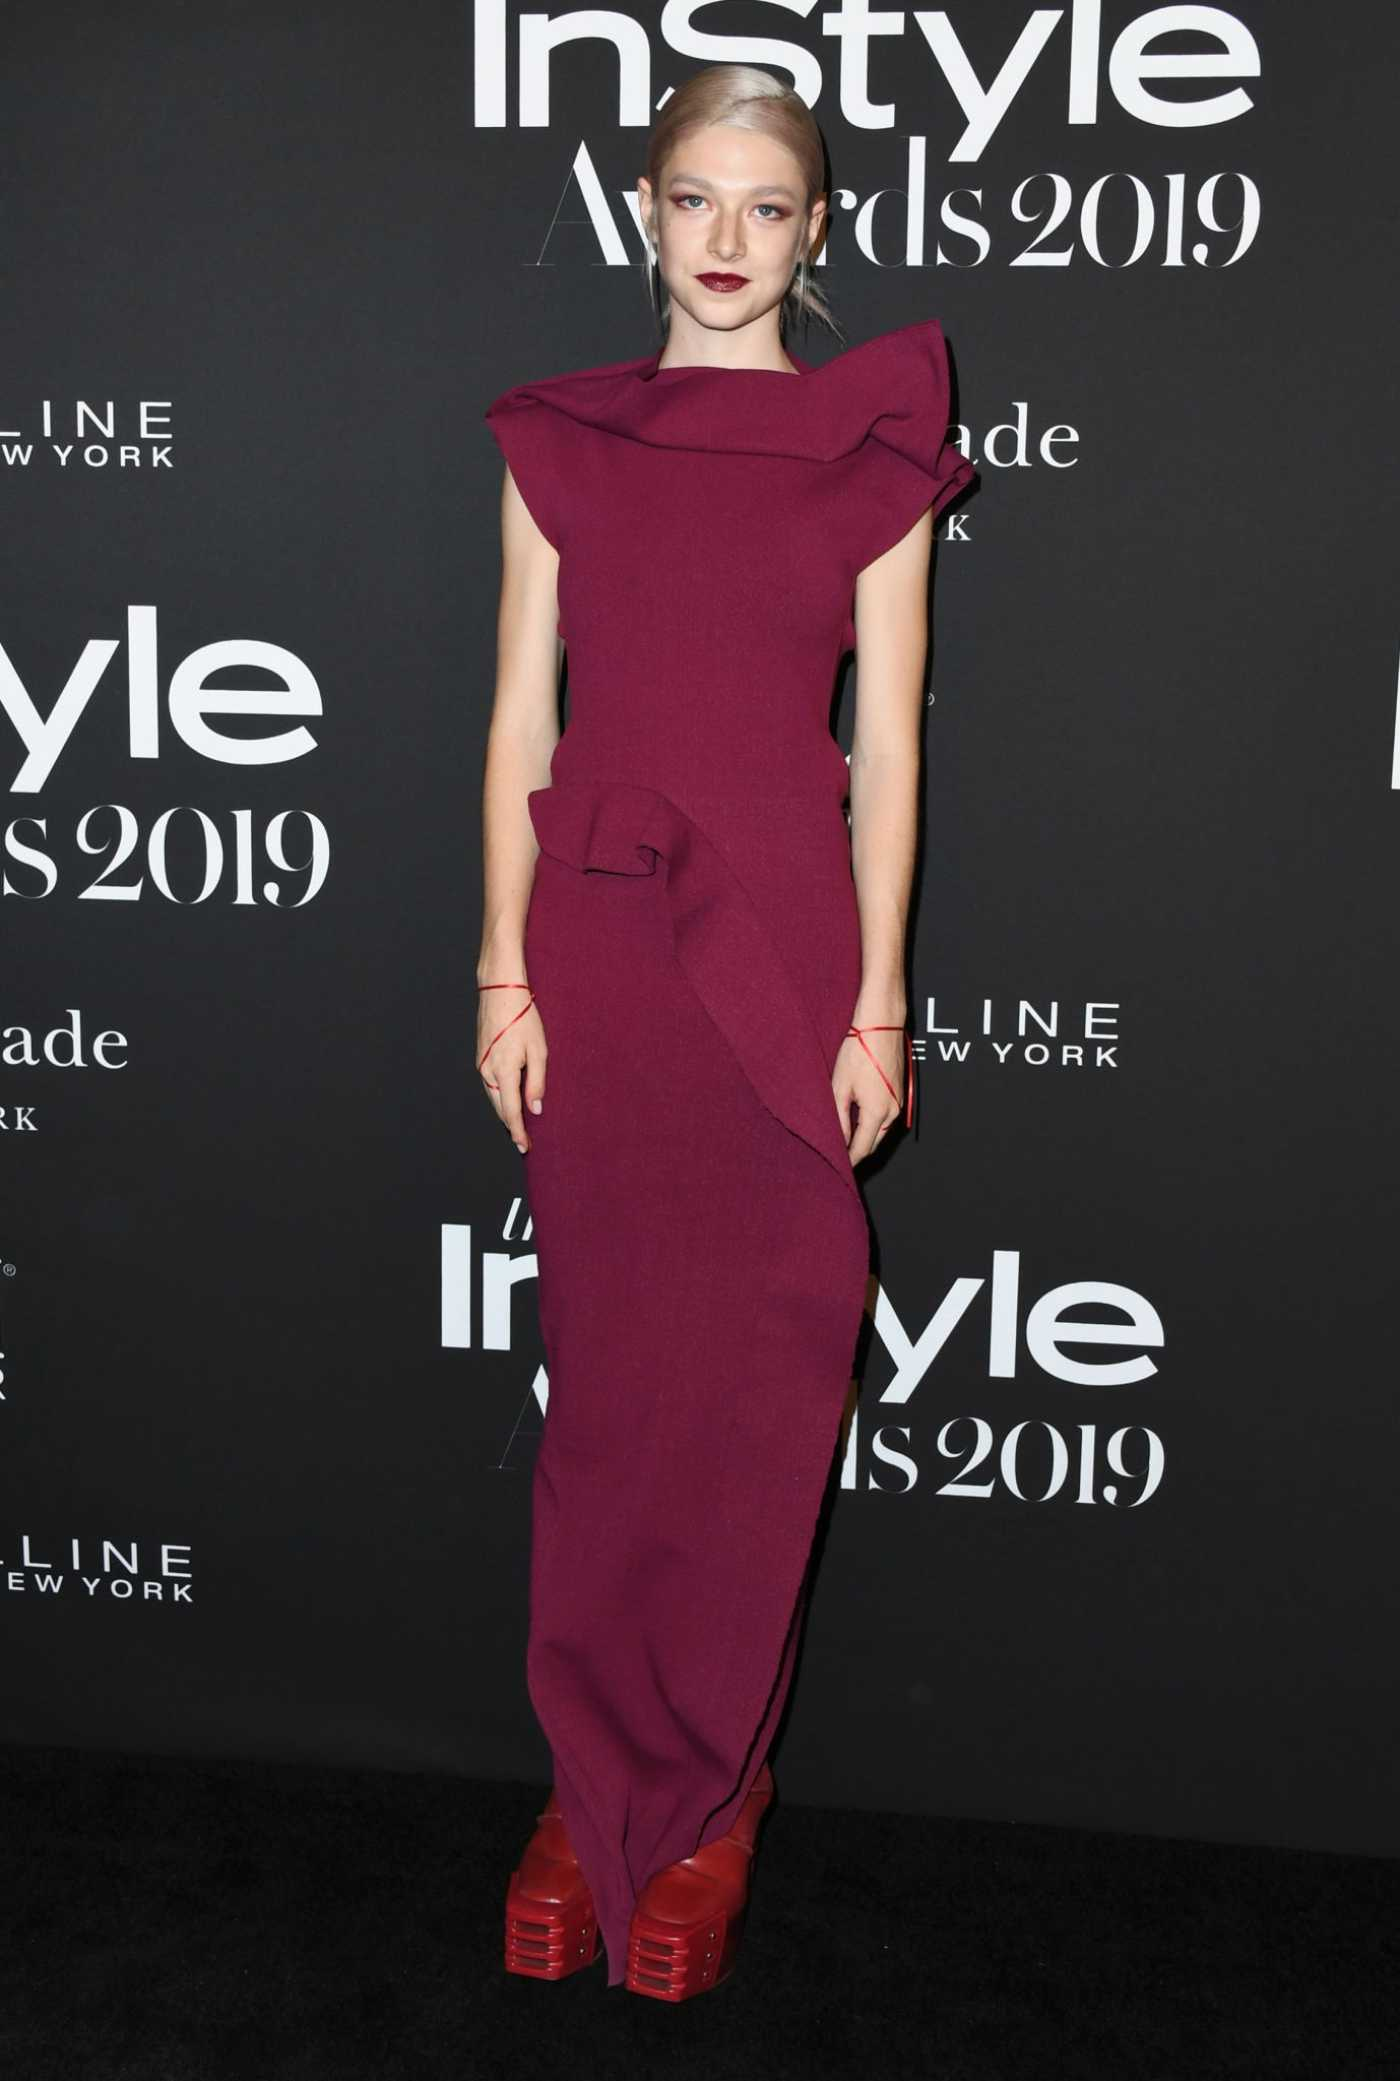 Hunter Schafer Attends the 5th Annual InStyle Awards in Los Angeles 10/21/2019